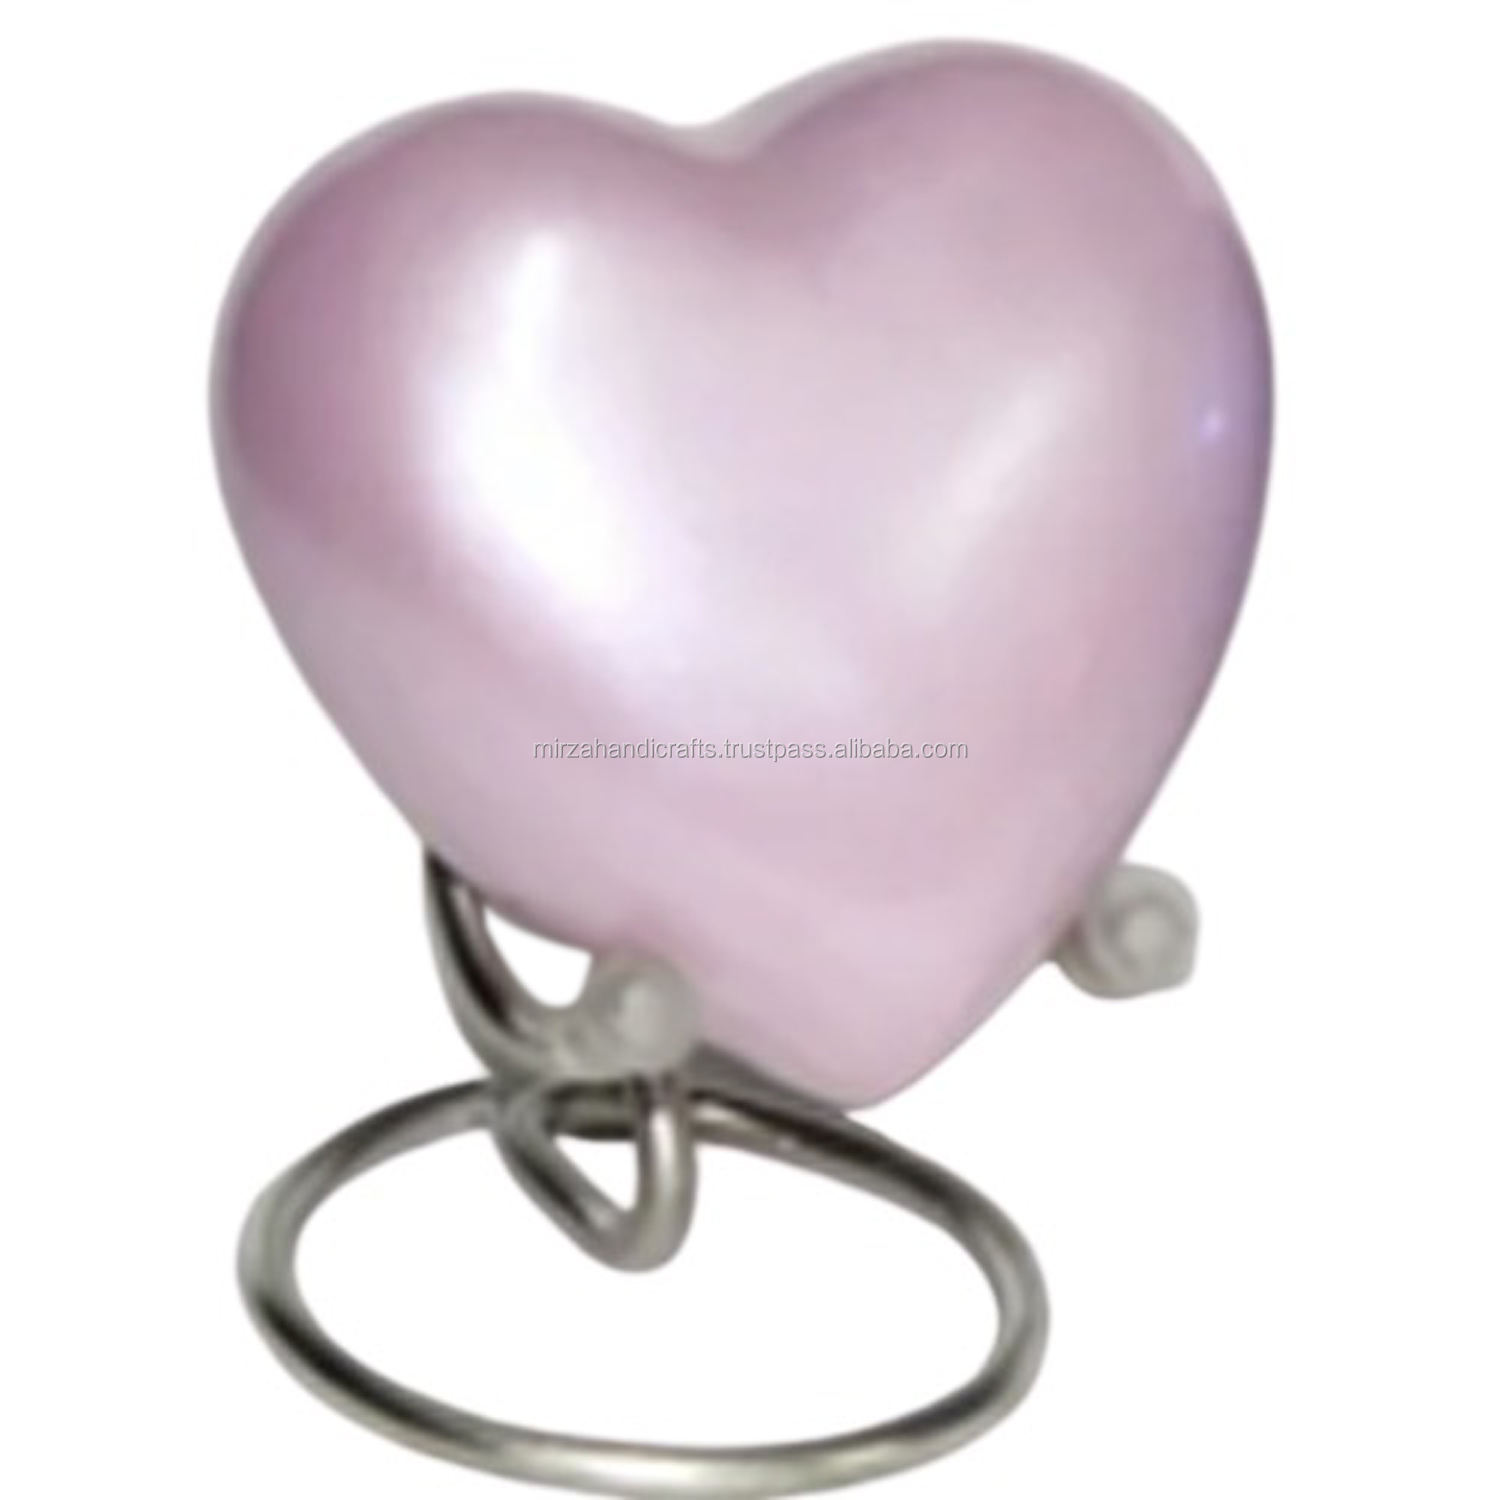 Light Pink With Stands Heart shaped urn